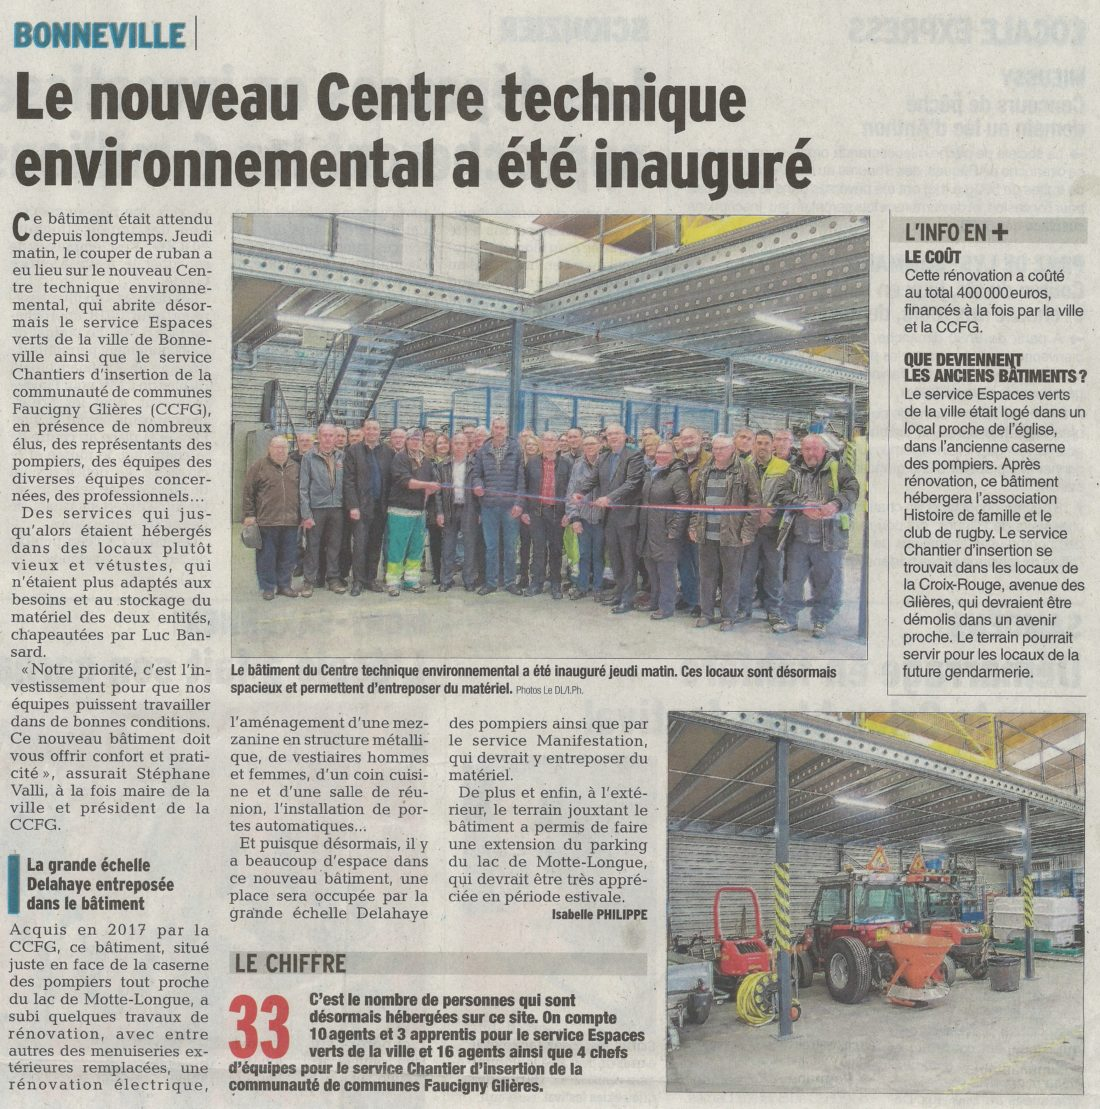 M'Architecte - Inauguration du centre technique de Bonneville